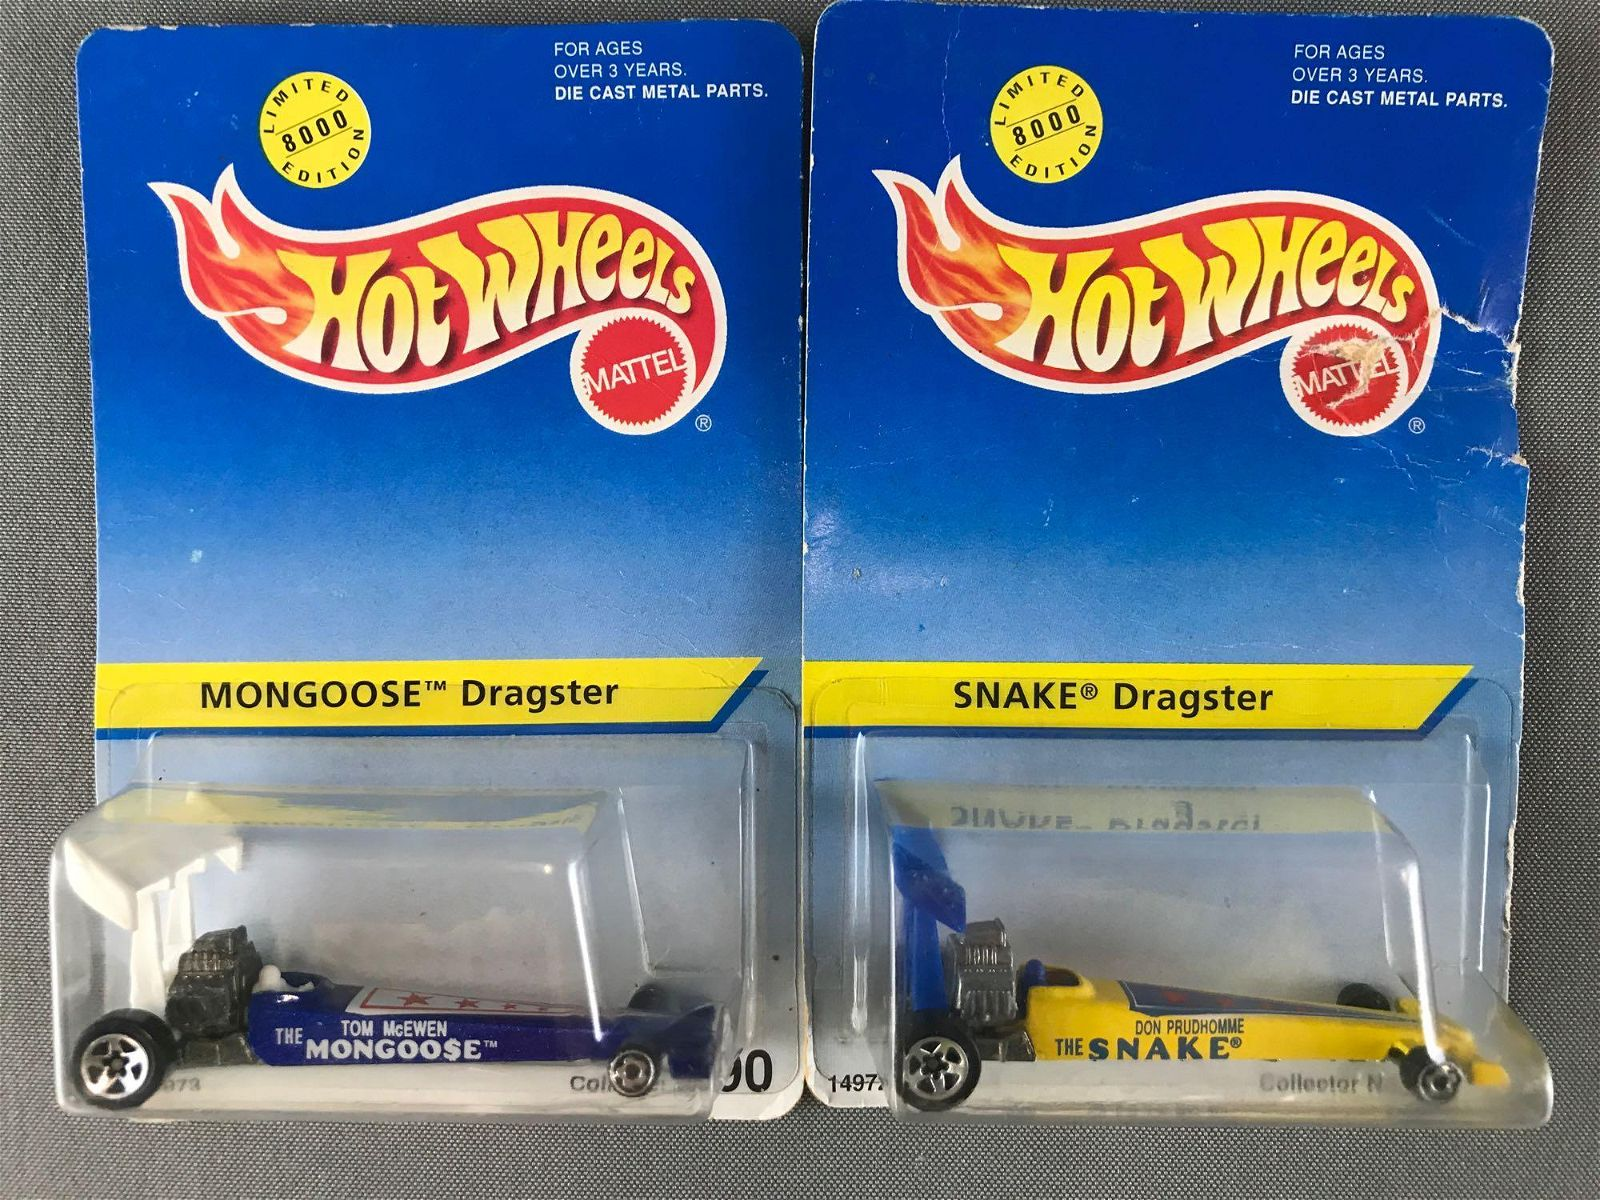 Group of 2 1995 Limited Edition Hot Wheels die-cast